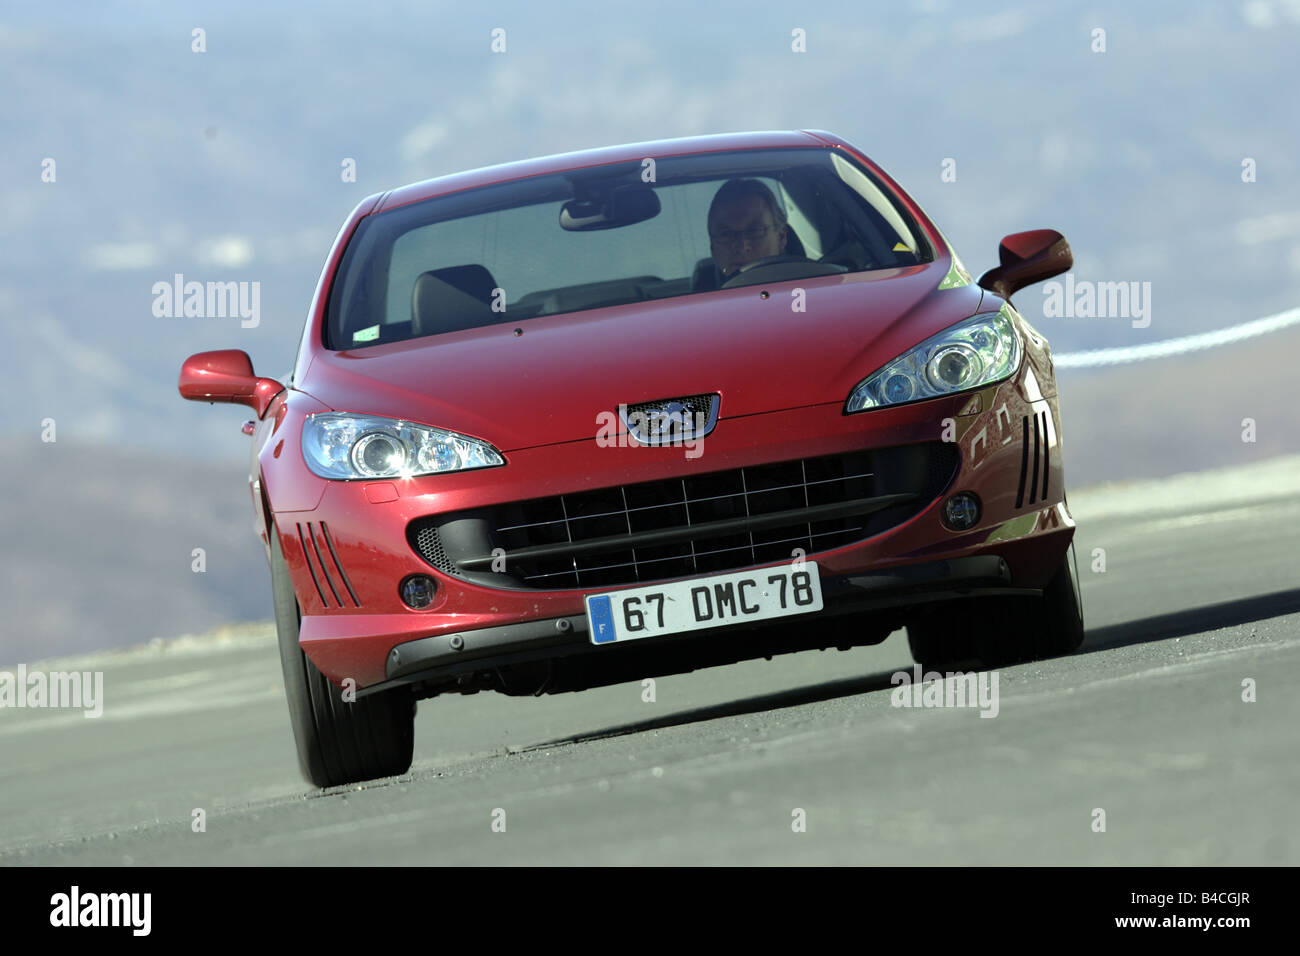 Peugeot 407 Coupe V6 210, model year 2005-, red, driving, frontal view, country road - Stock Image